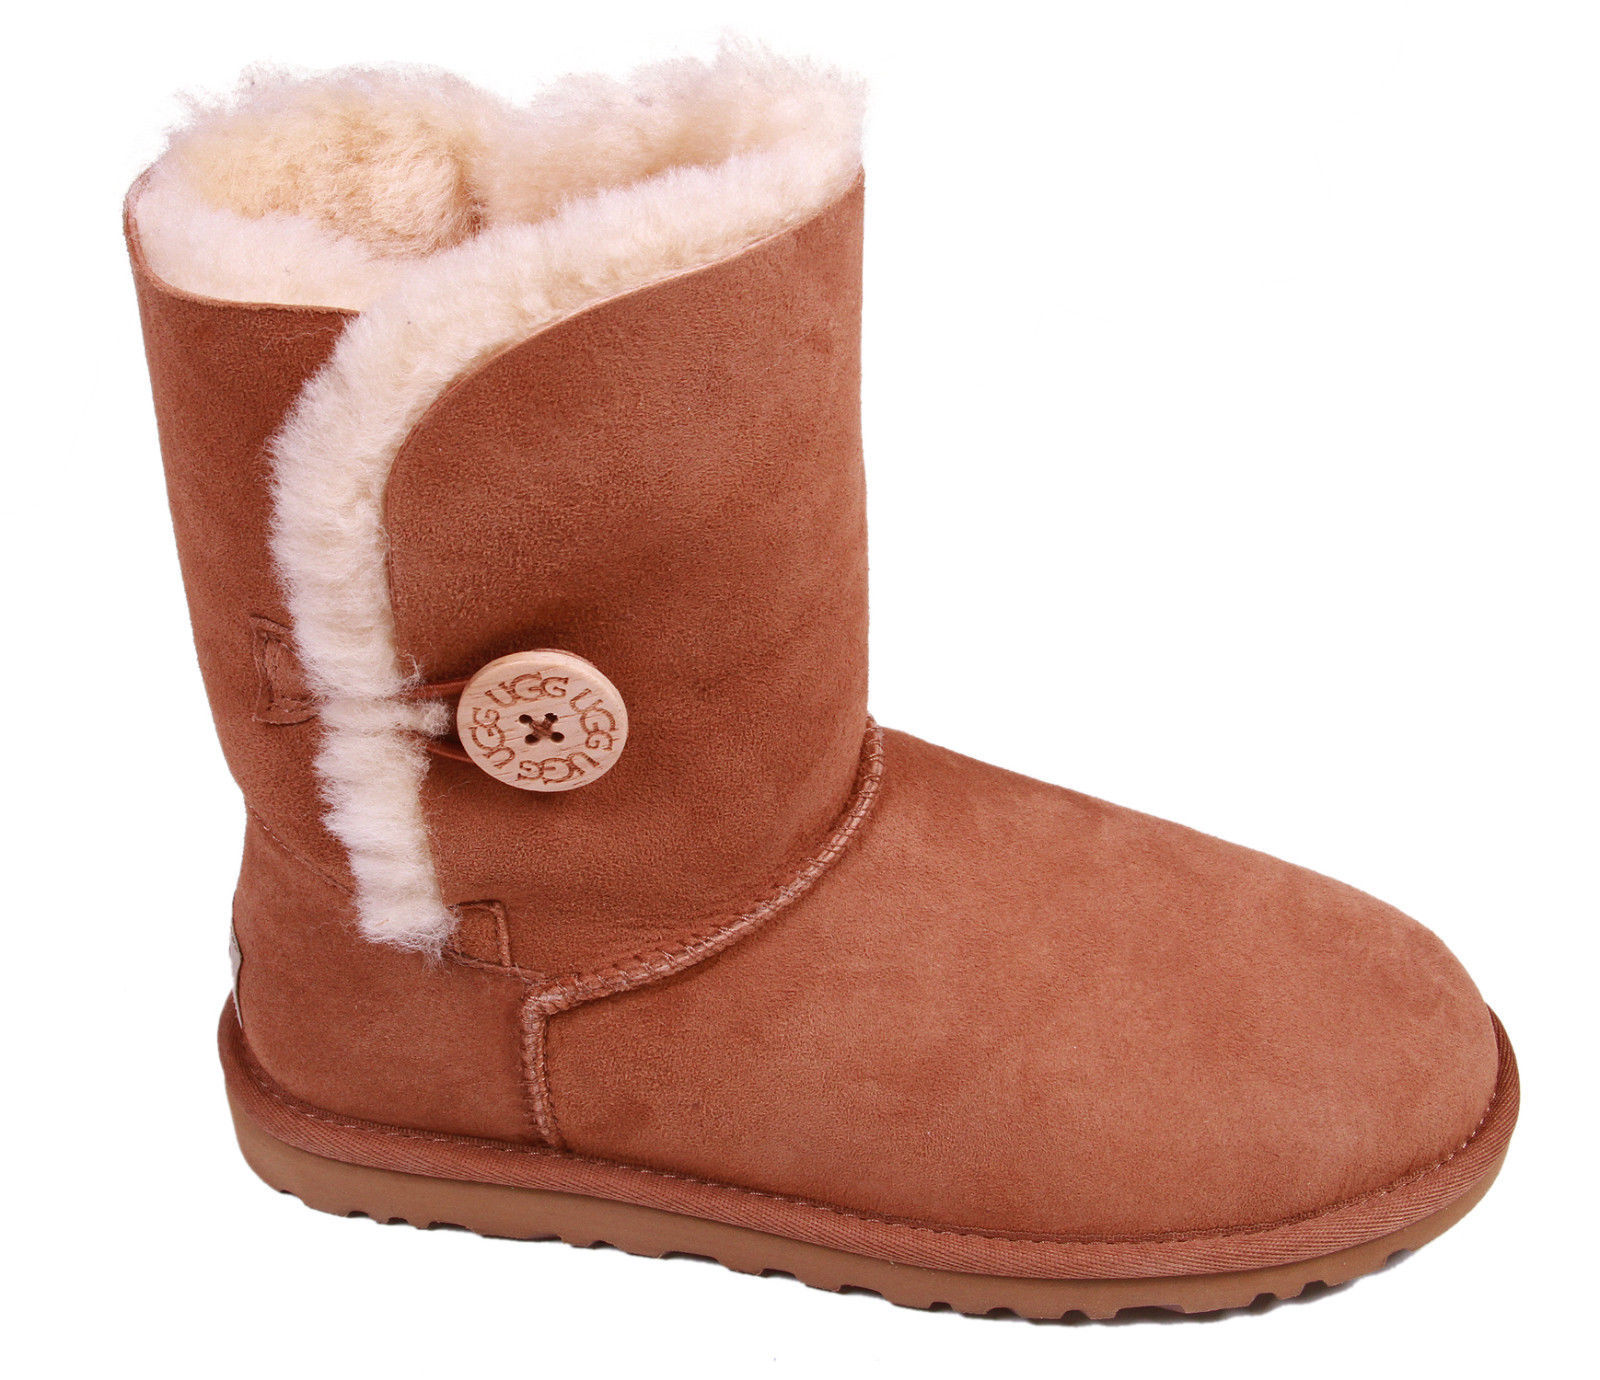 shops that sell uggs in new york